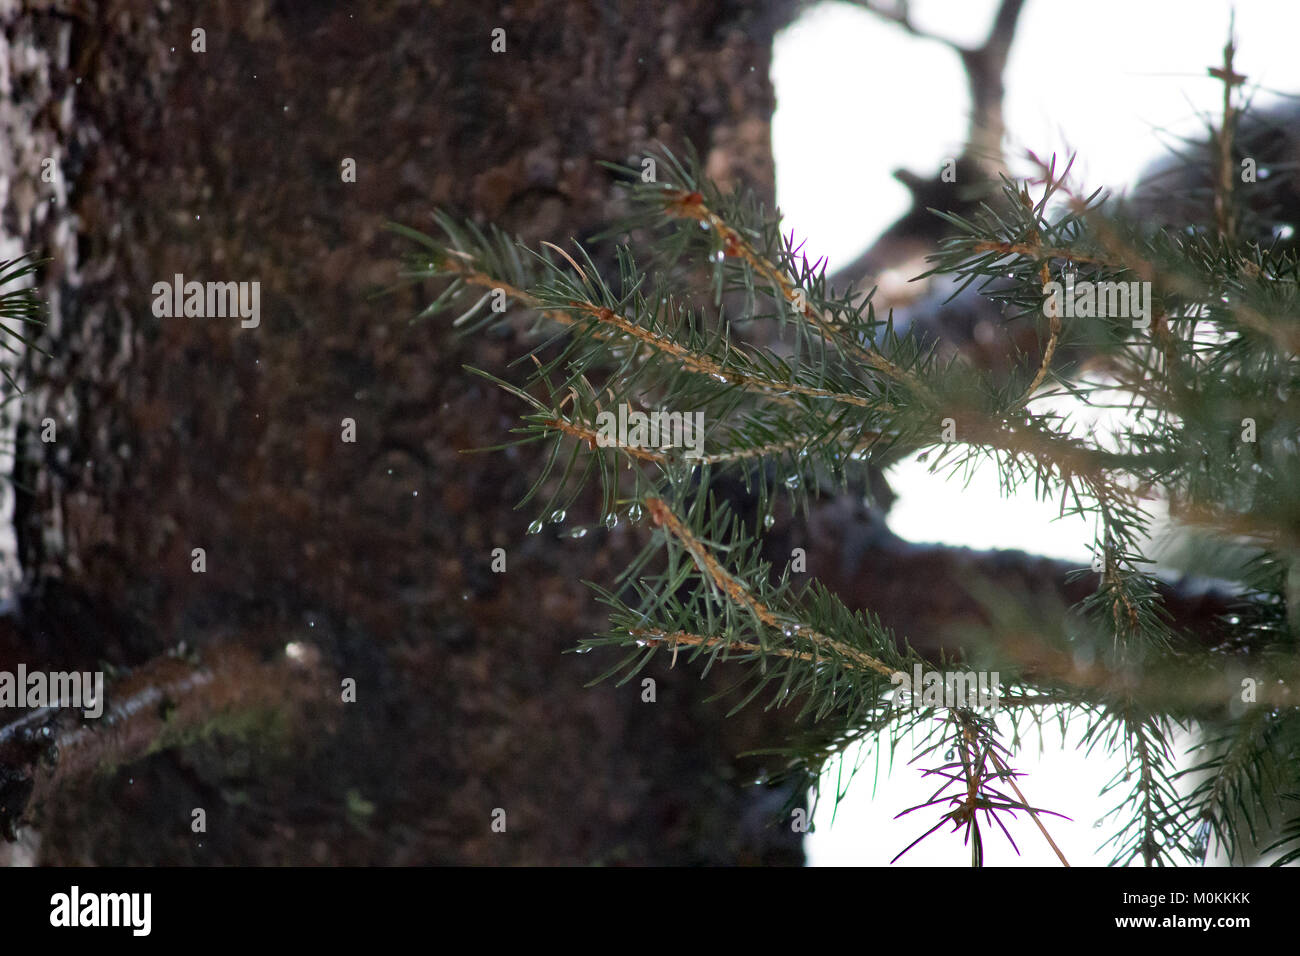 23 January 2018 Water drops on the leaves of Norway Spruce tree in Japan - Stock Image